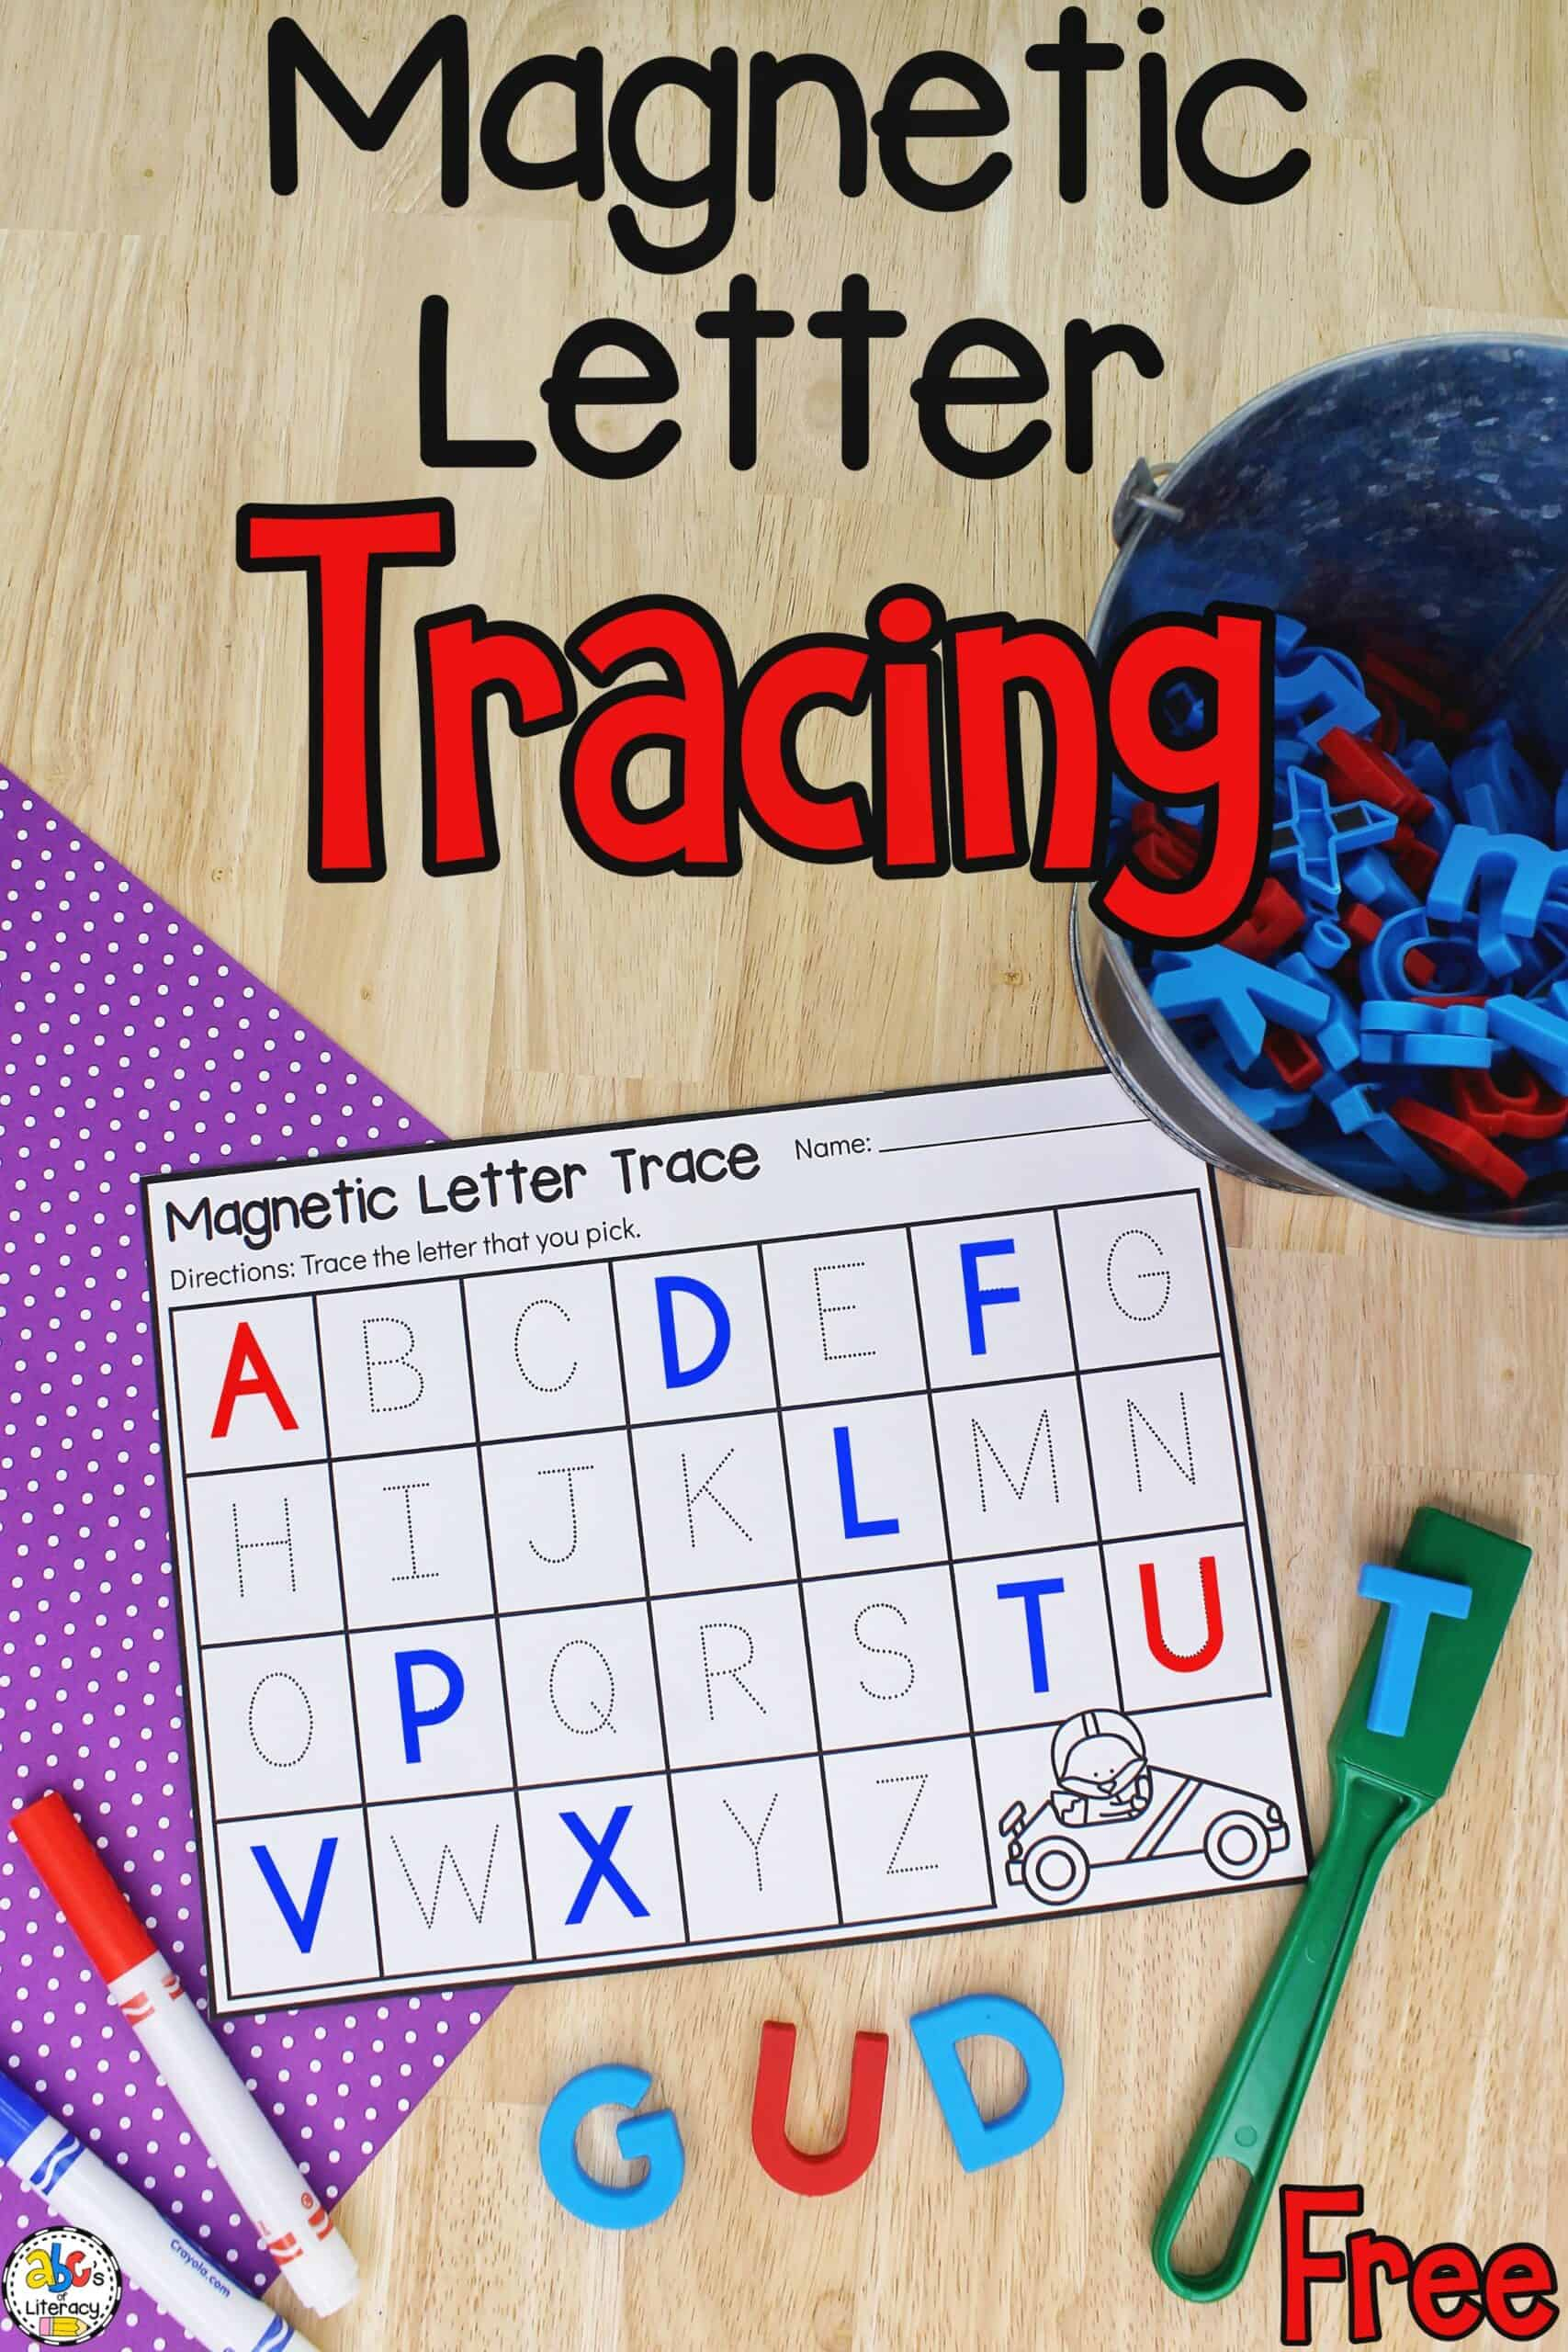 Magnetic Letter Tracing